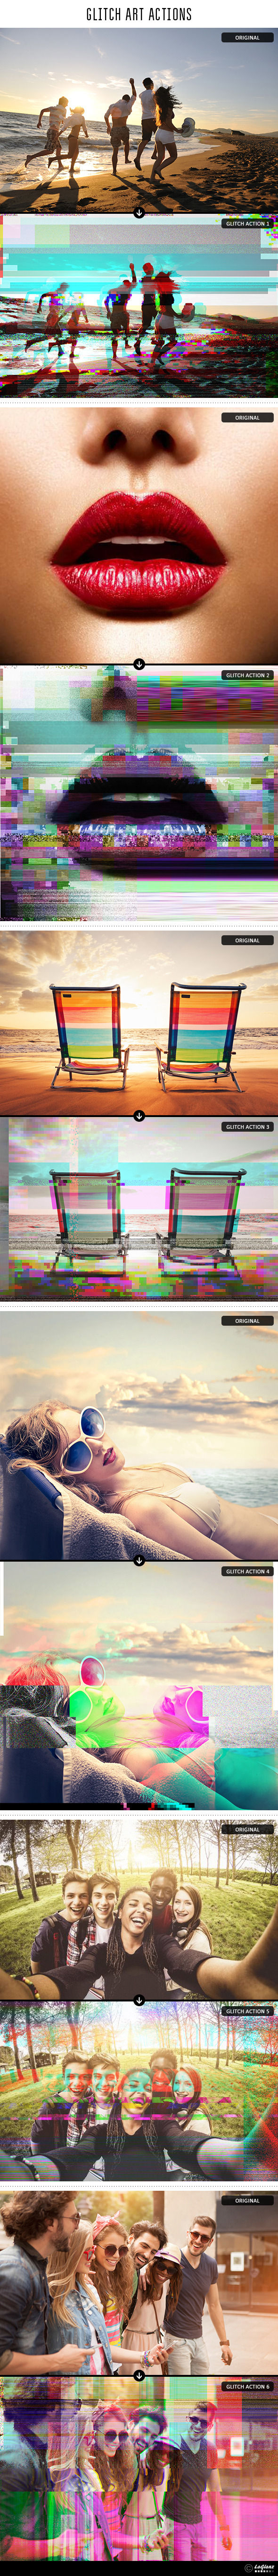 GraphicRiver Glitch Art Photoshop Actions 11455182